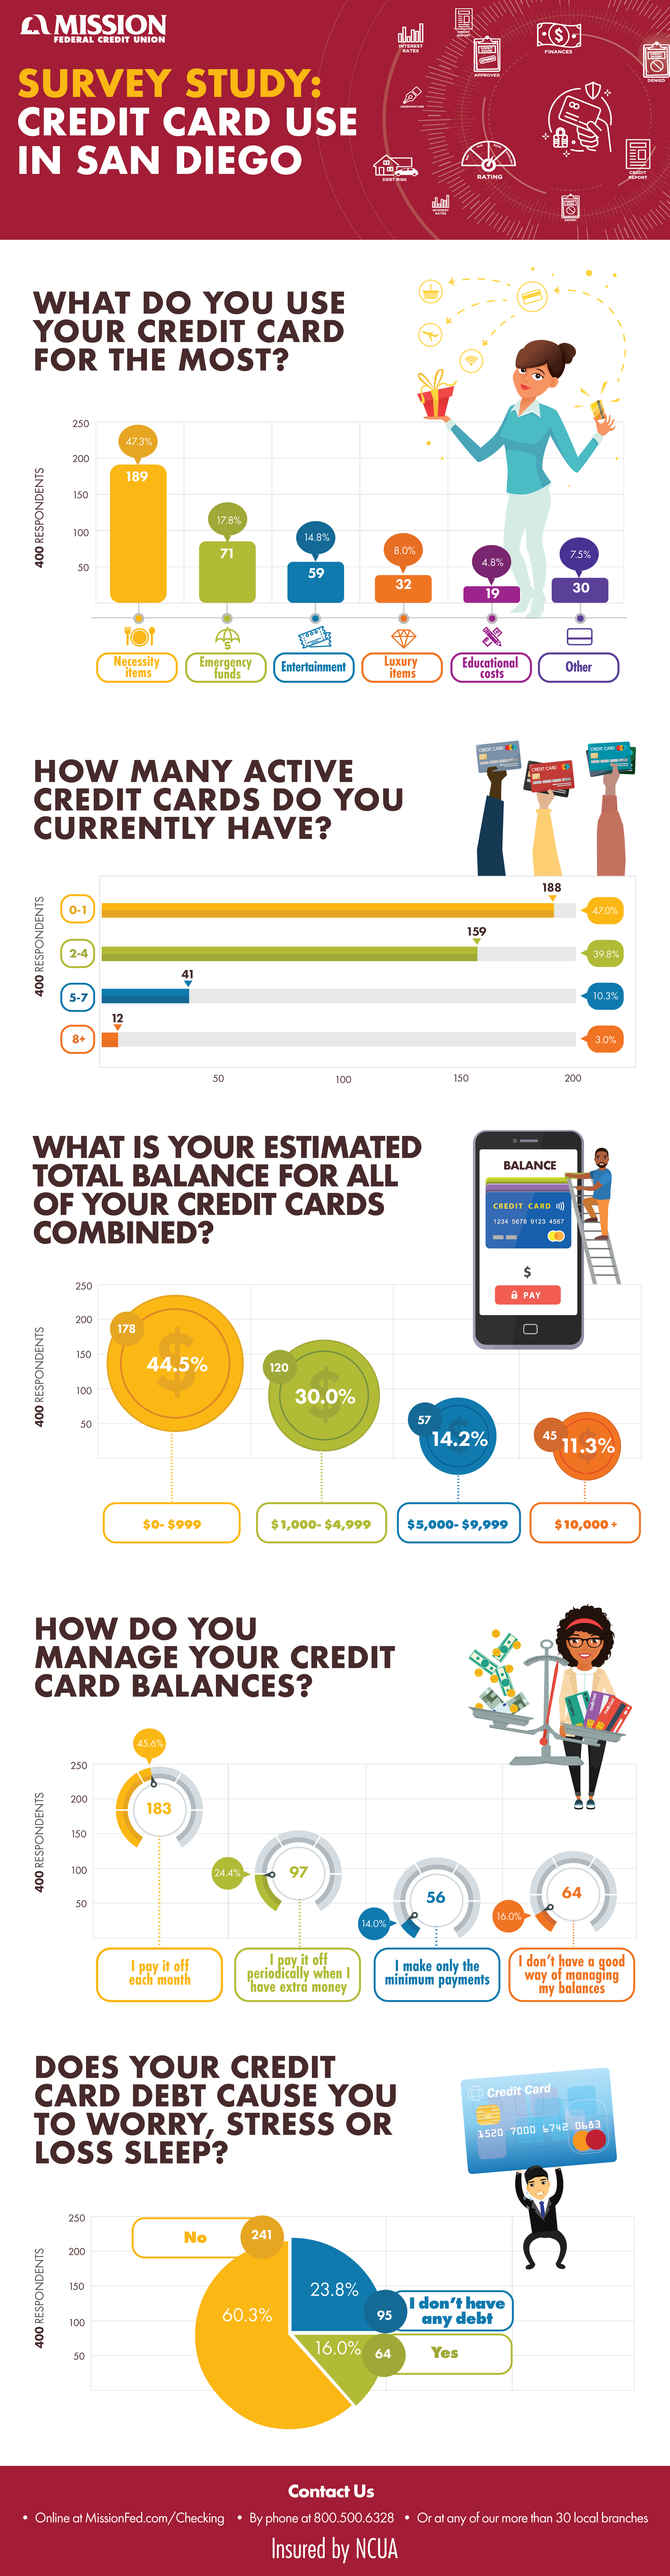 Survey Study: Credit Card Use in San Diego infographic.